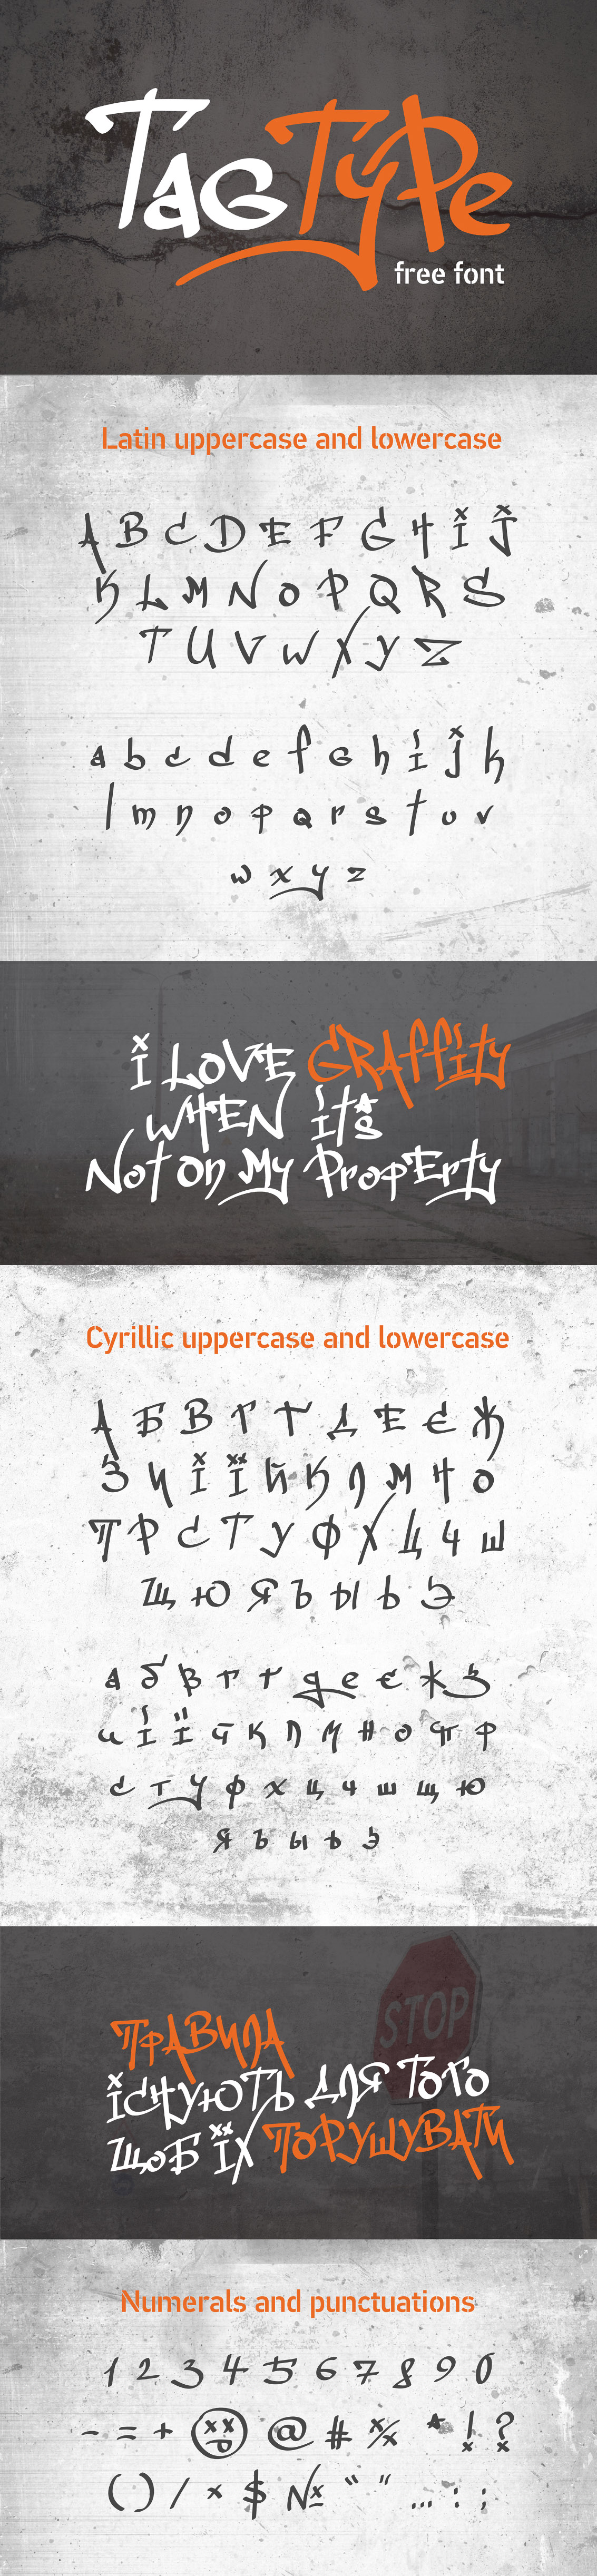 Tag typeface